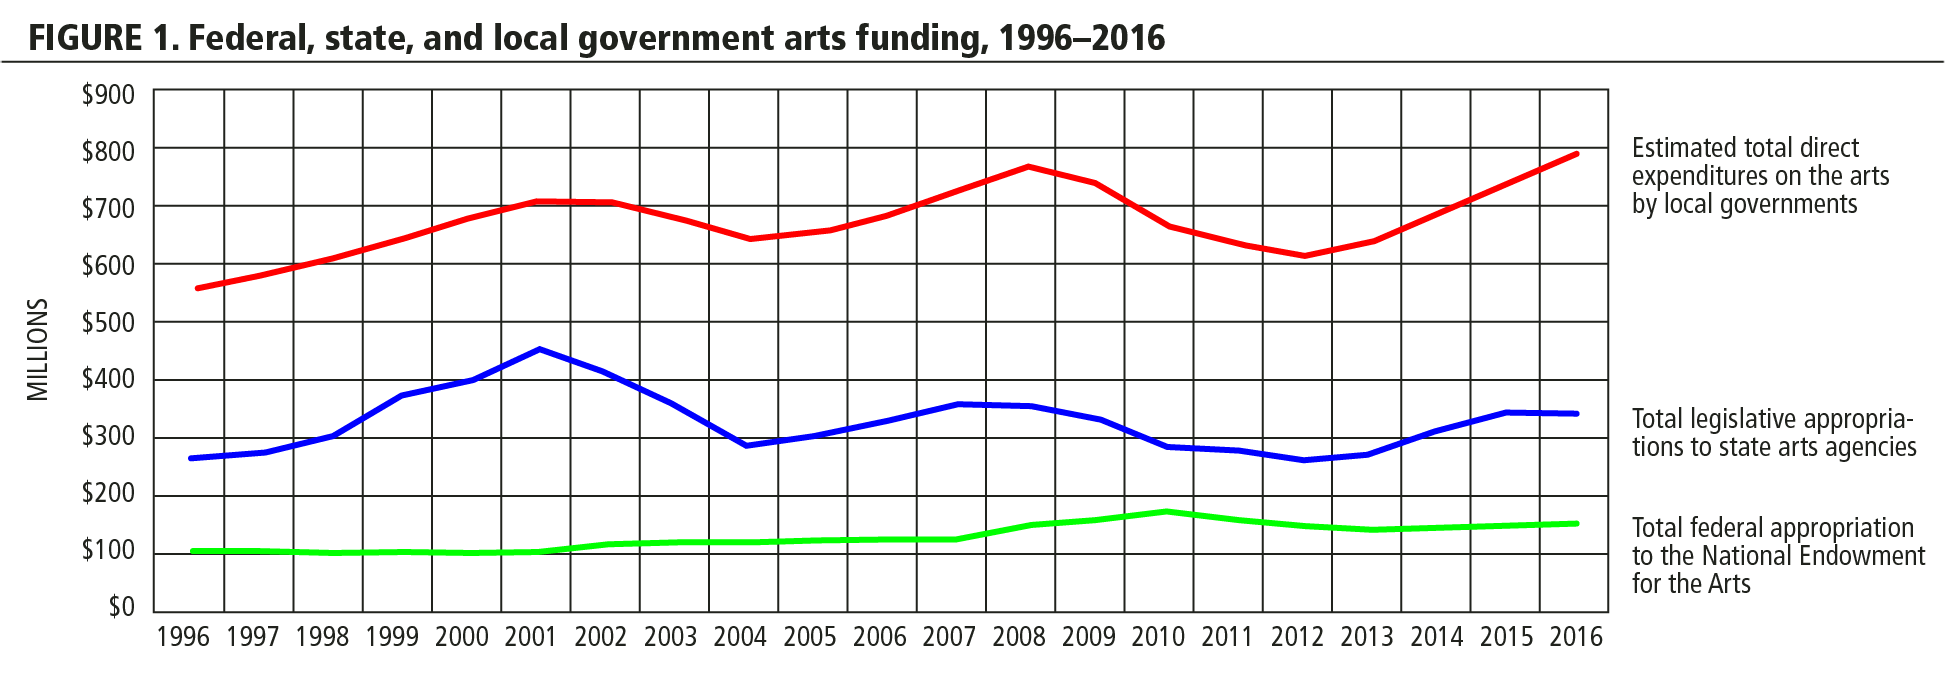 FIGURE 1. Federal, state, and local government arts funding, 1996-2016